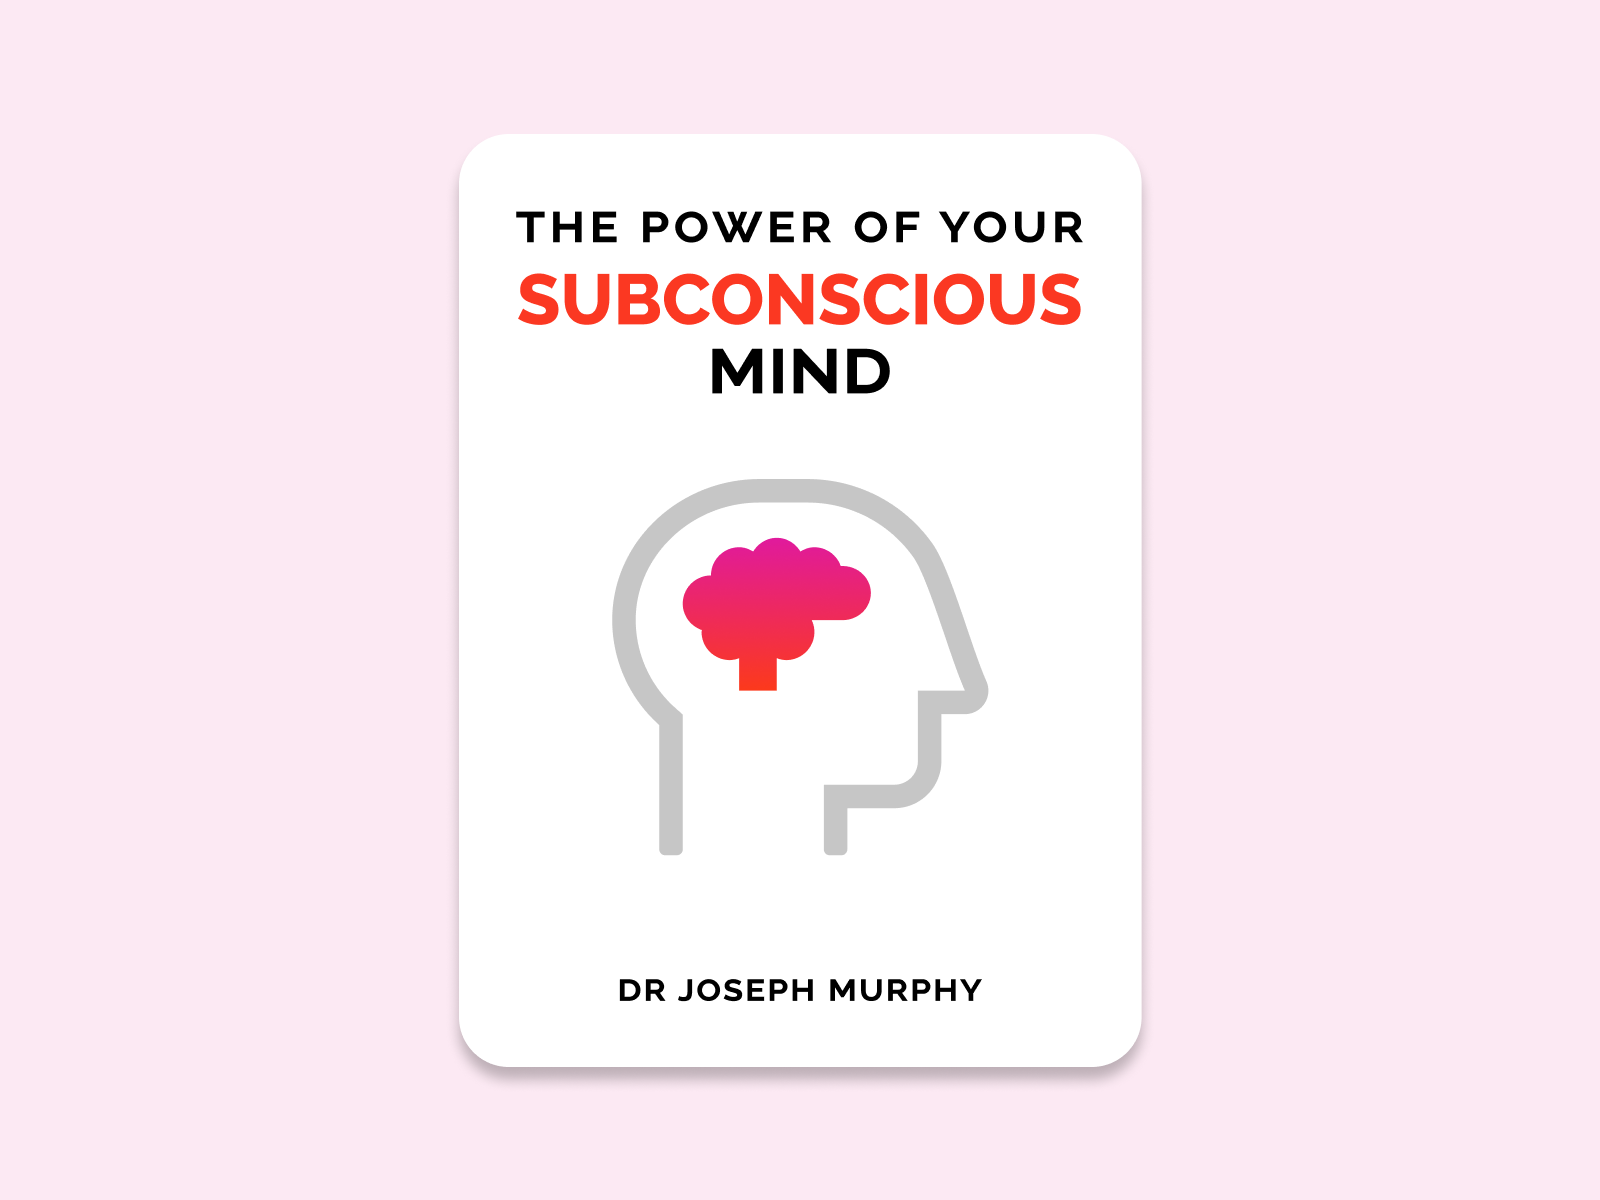 Minimal Book Cover - The Power of your subconscious mind